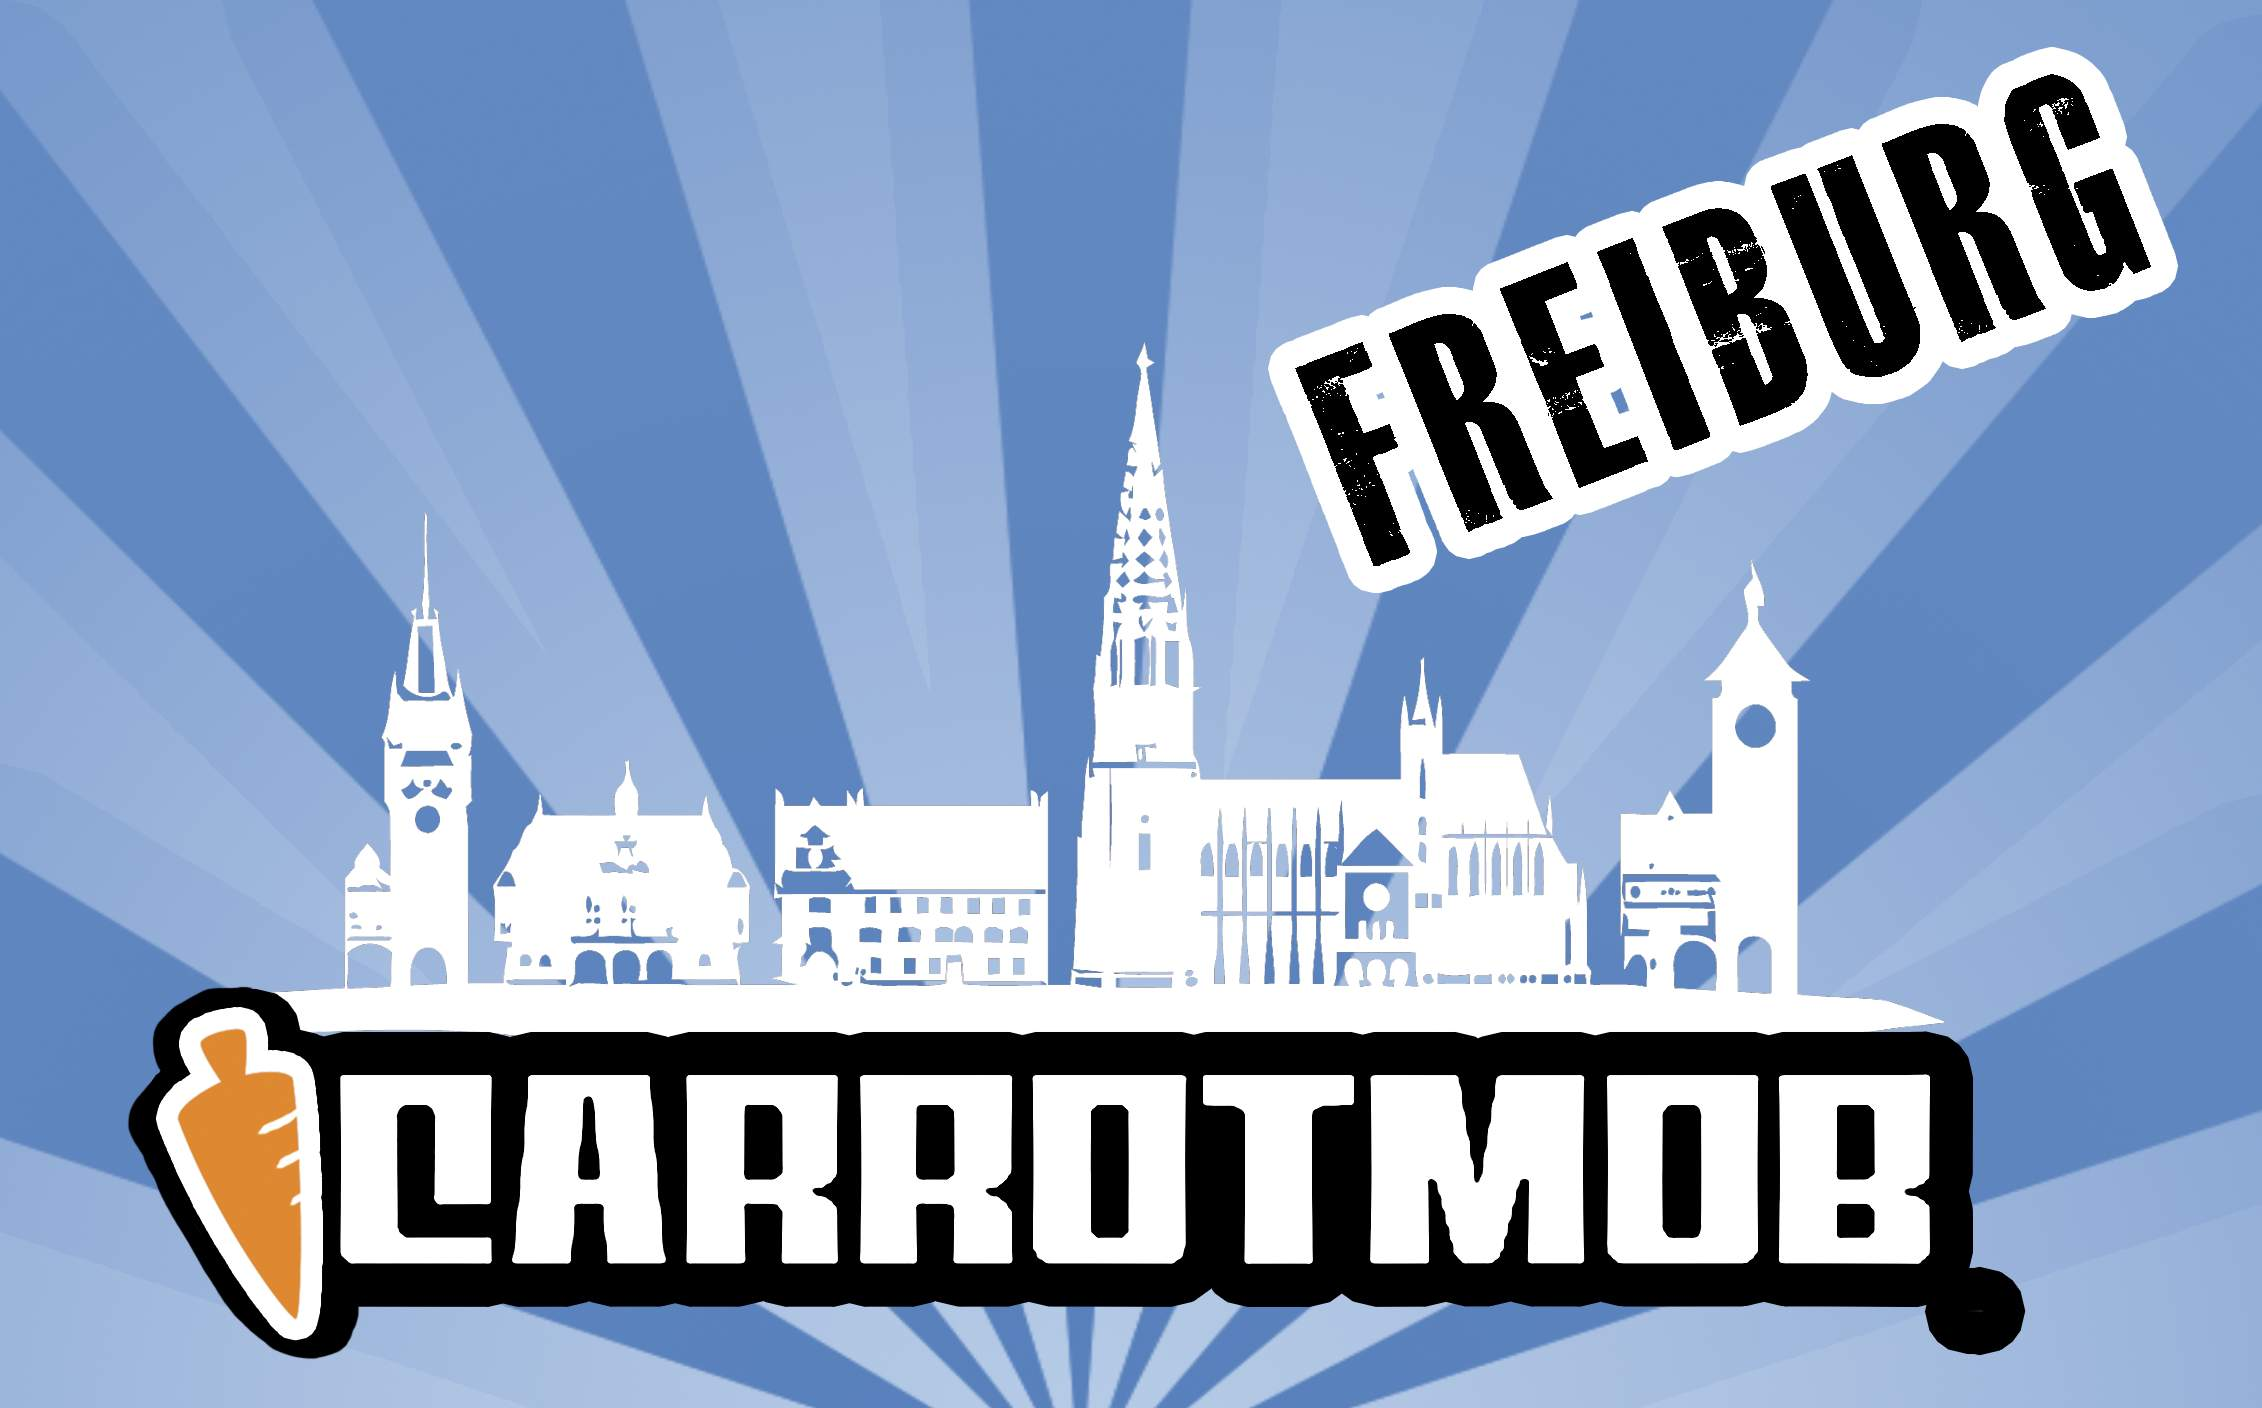 Carrotmob-freiburg3 in